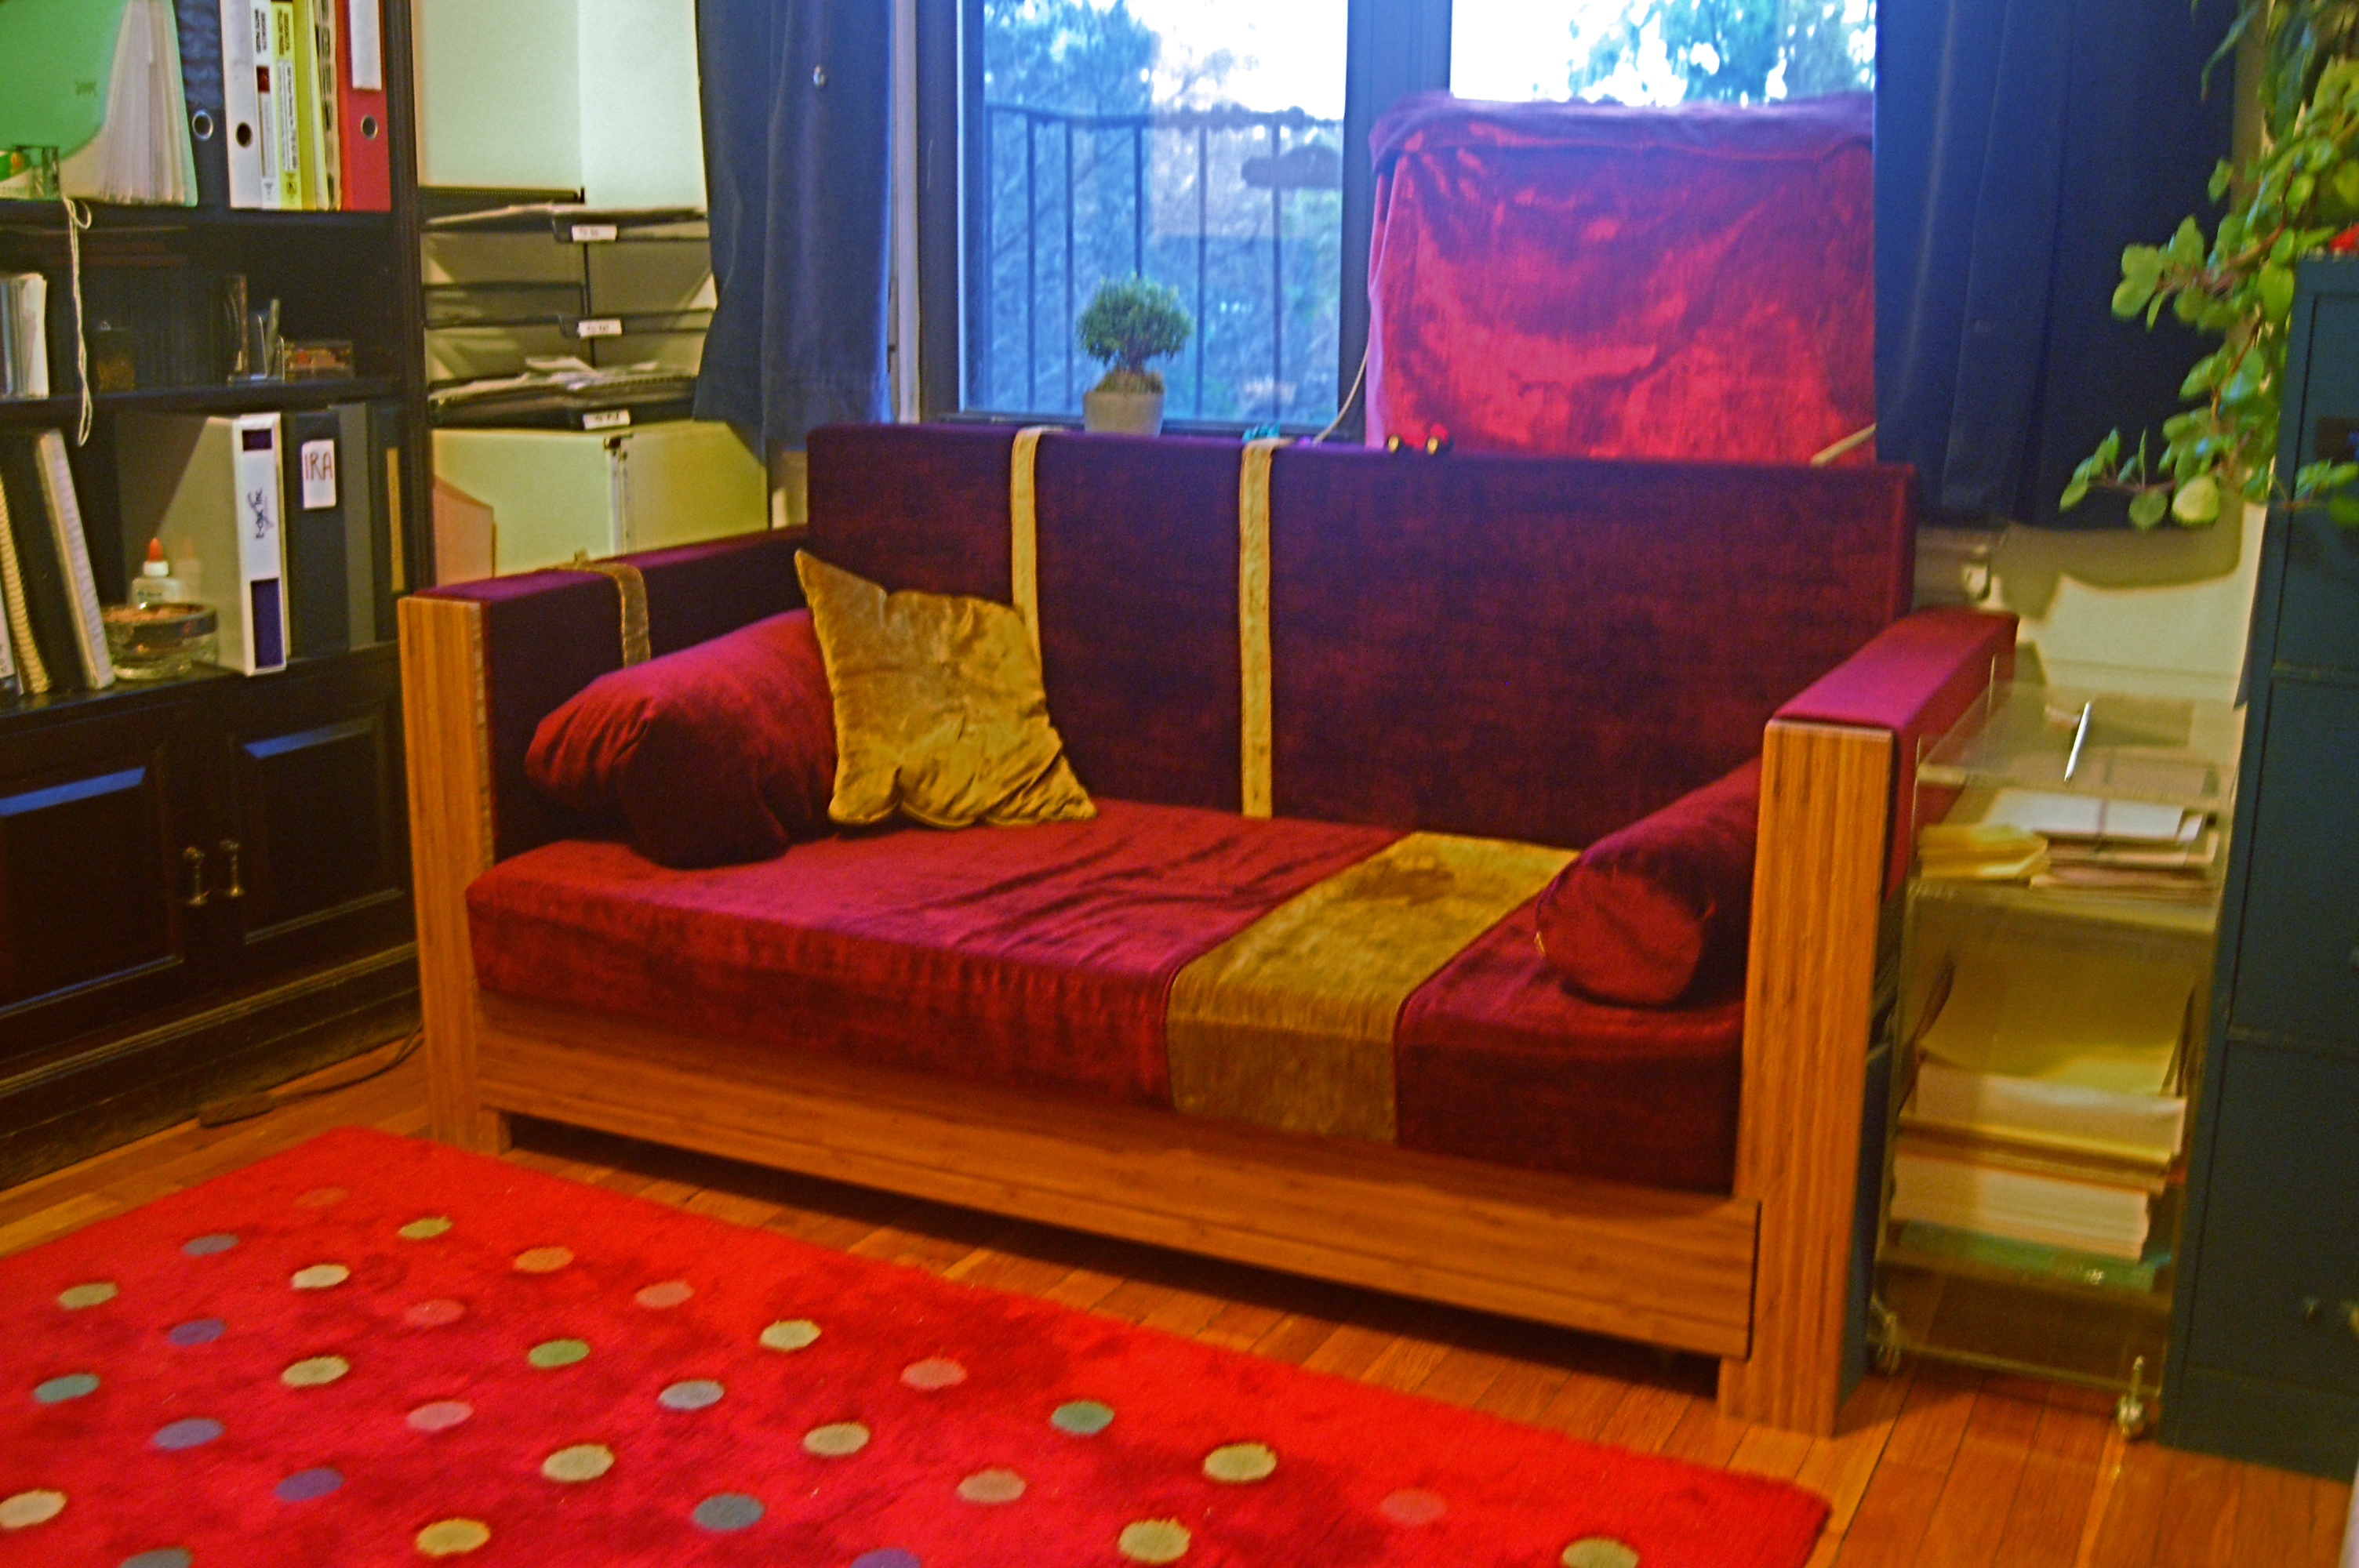 The impossible sofa bed